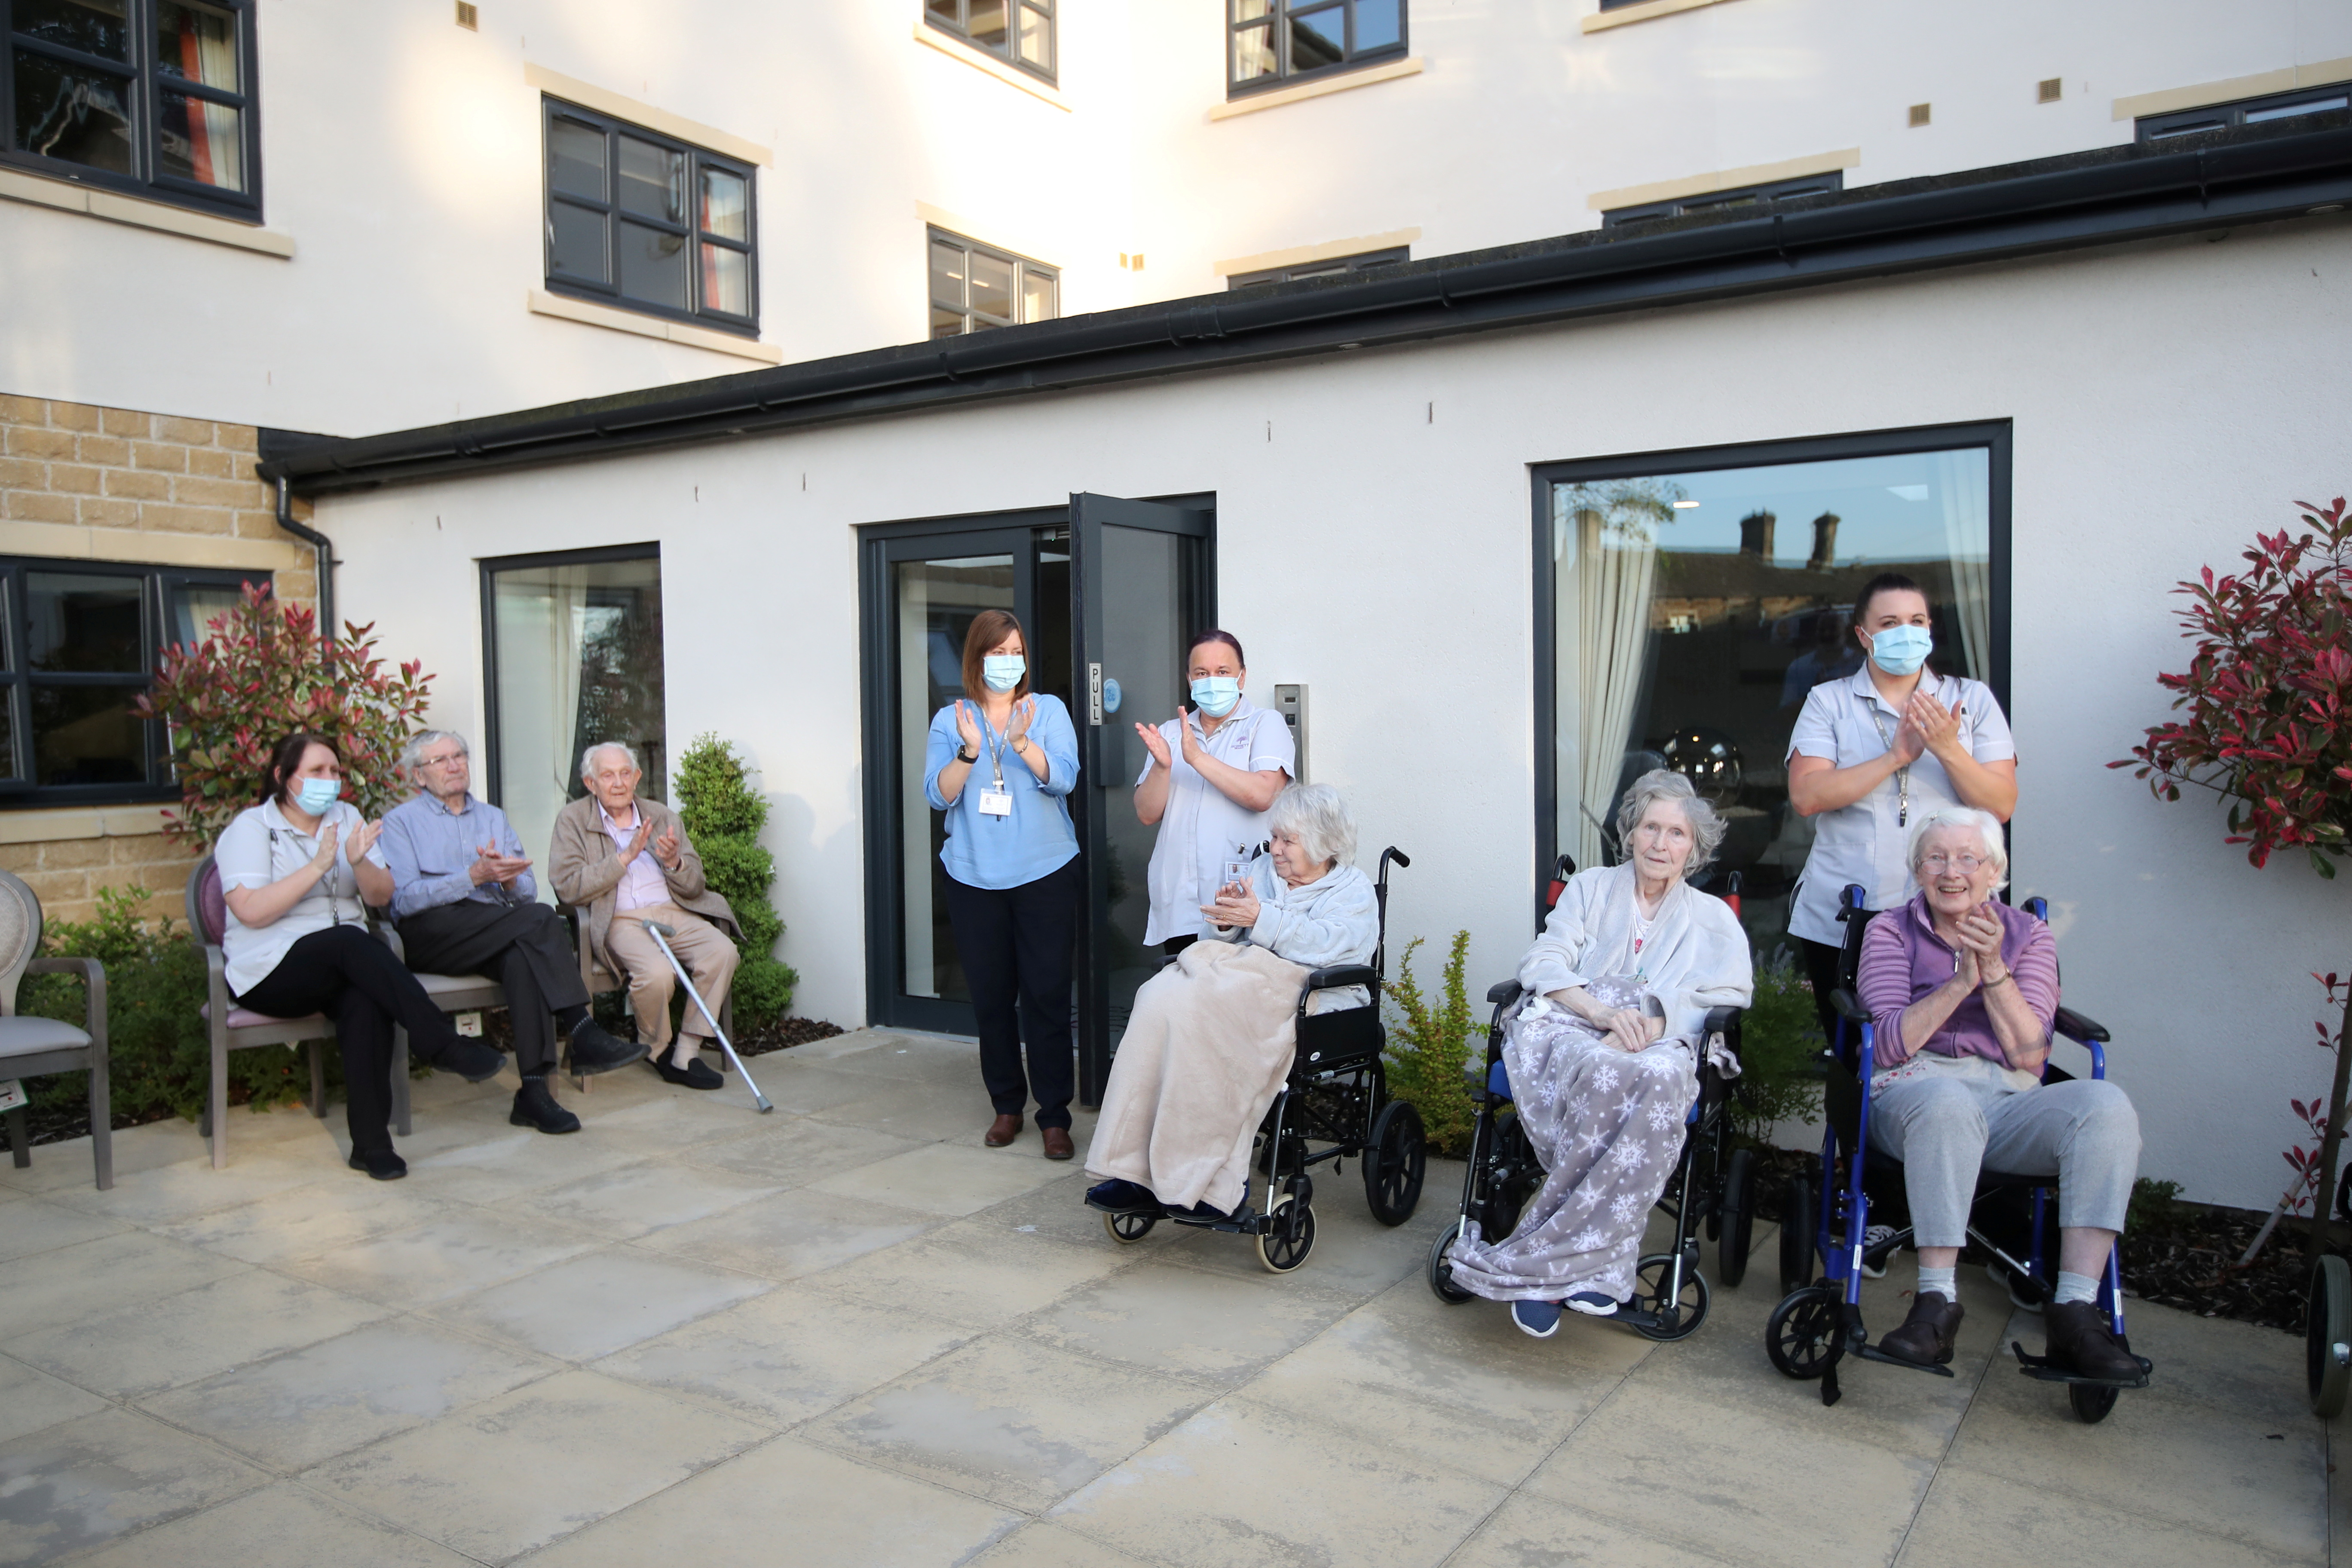 Care workers and residents of the Scisset Mount Care Home react during the last day of the Clap for our Carers campaign in support of the NHS, following the outbreak of the coronavirus disease (COVID-19), Huddersfield, Britain, May 28, 2020. REUTERS/Molly Darlington/File Photo